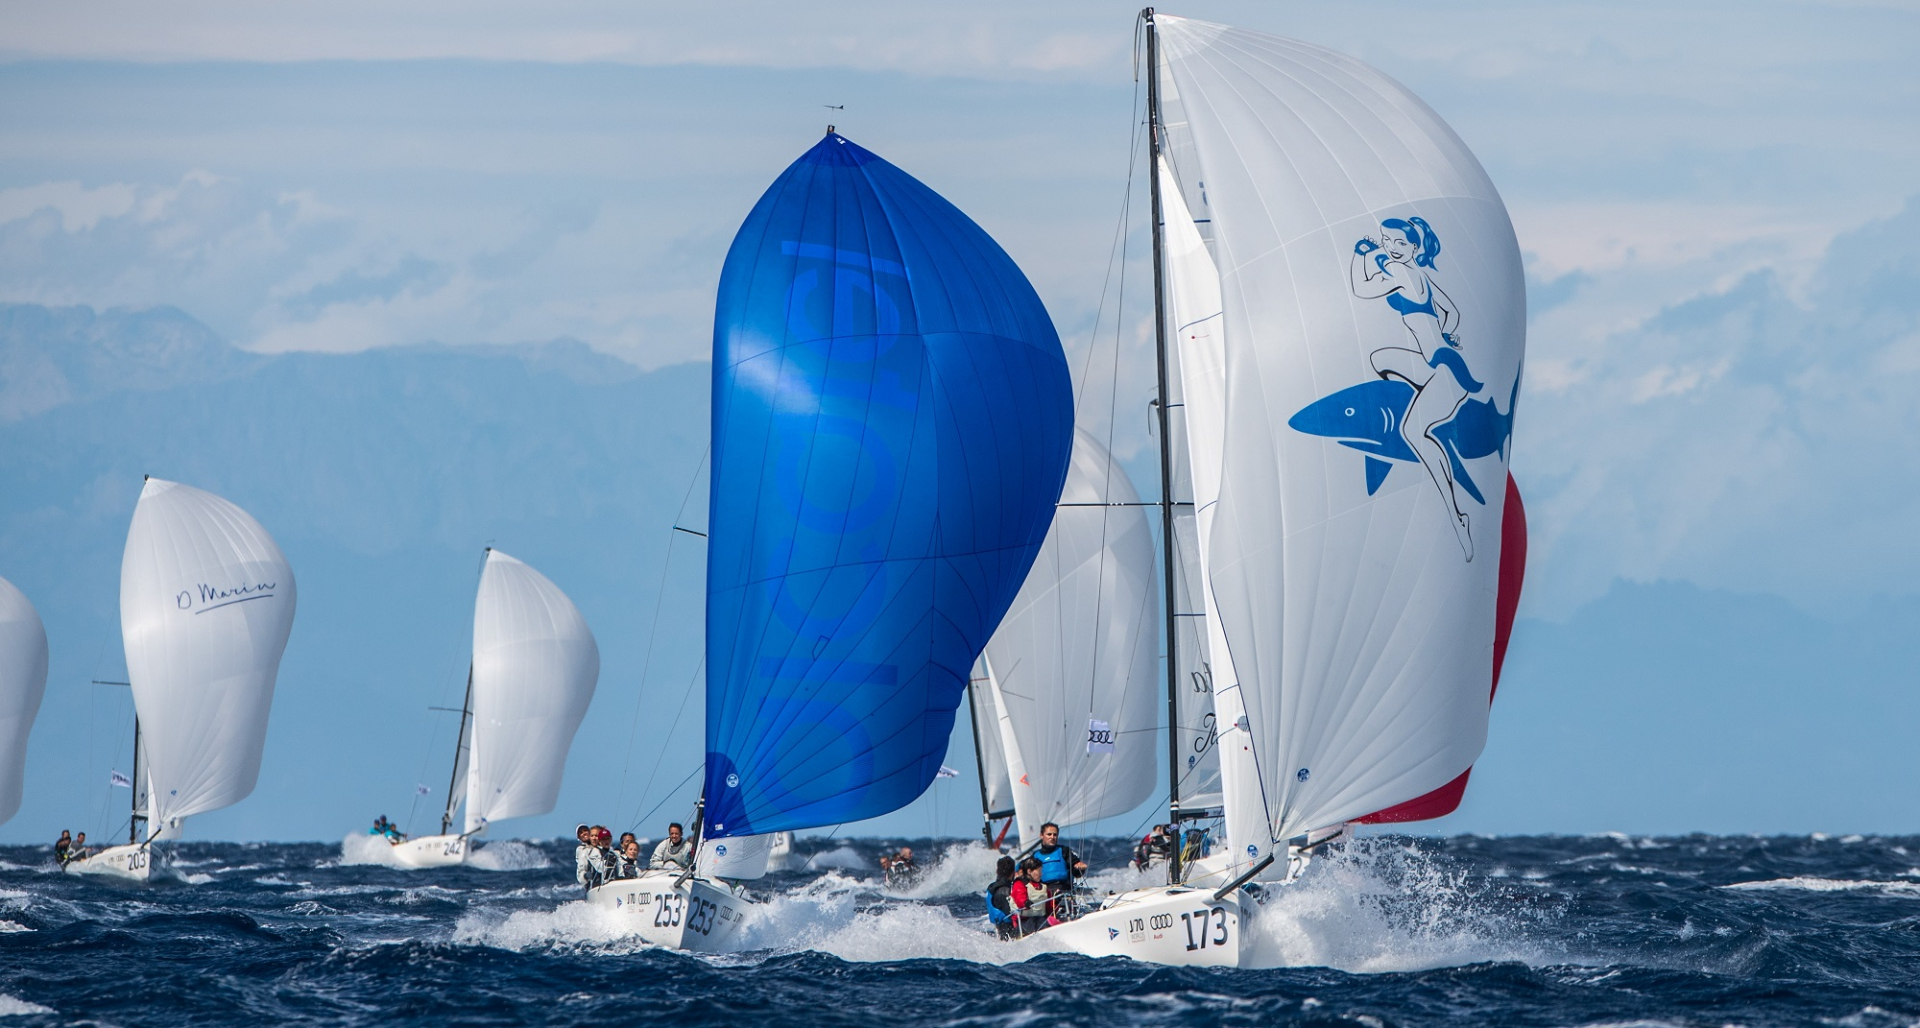 Audi J/70 World Championship: Duncan is Top of the World - NEWS - Yacht Club Costa Smeralda